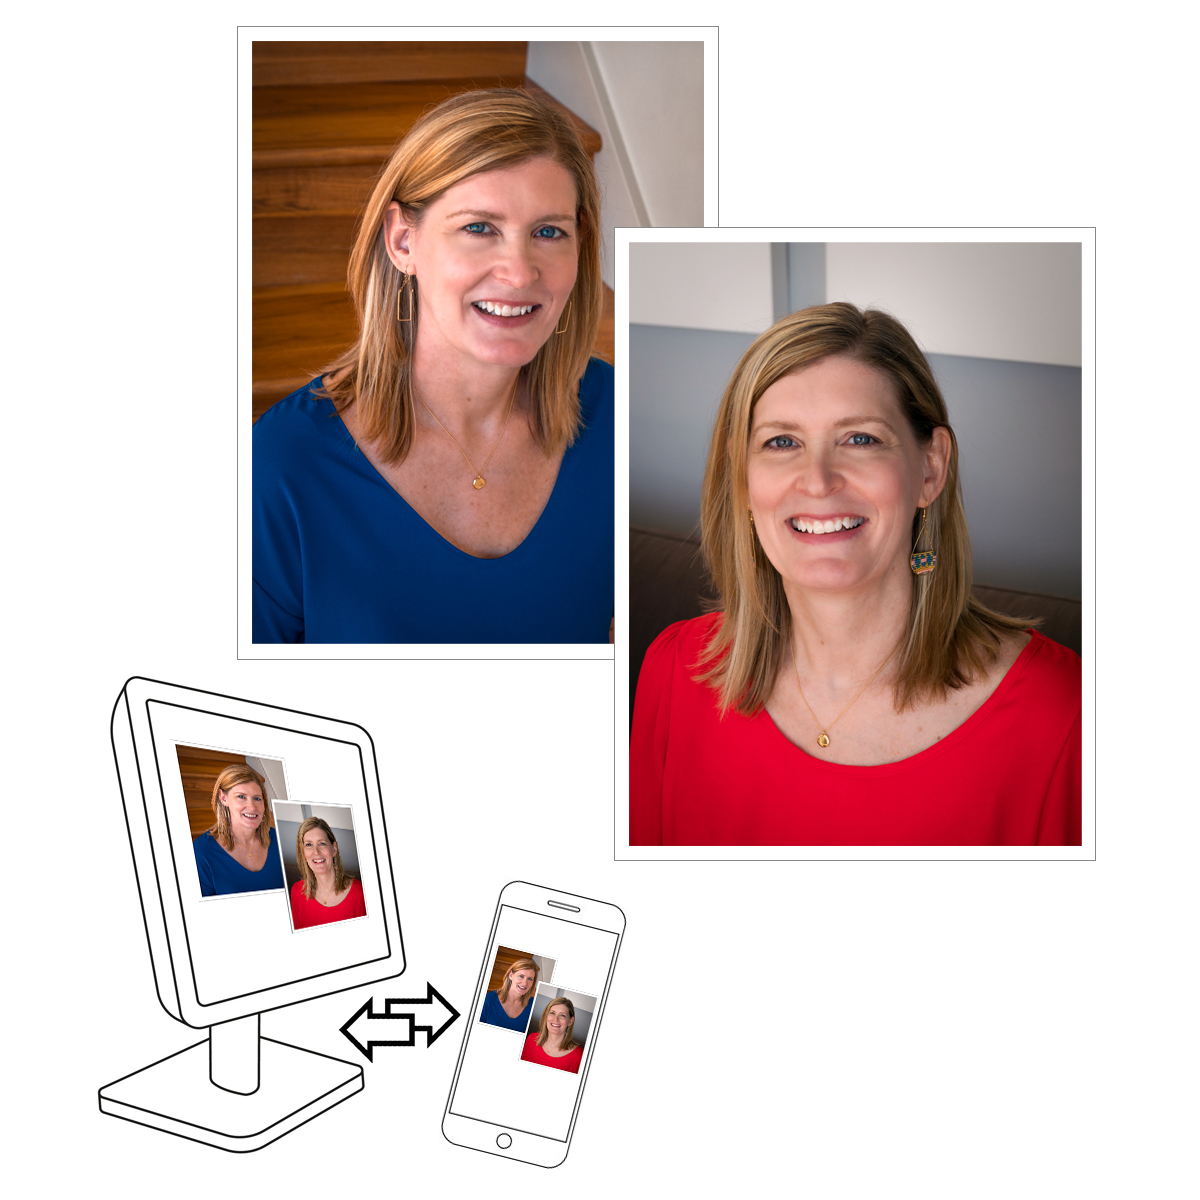 photo illustration of portrait poses with computer and mobile device